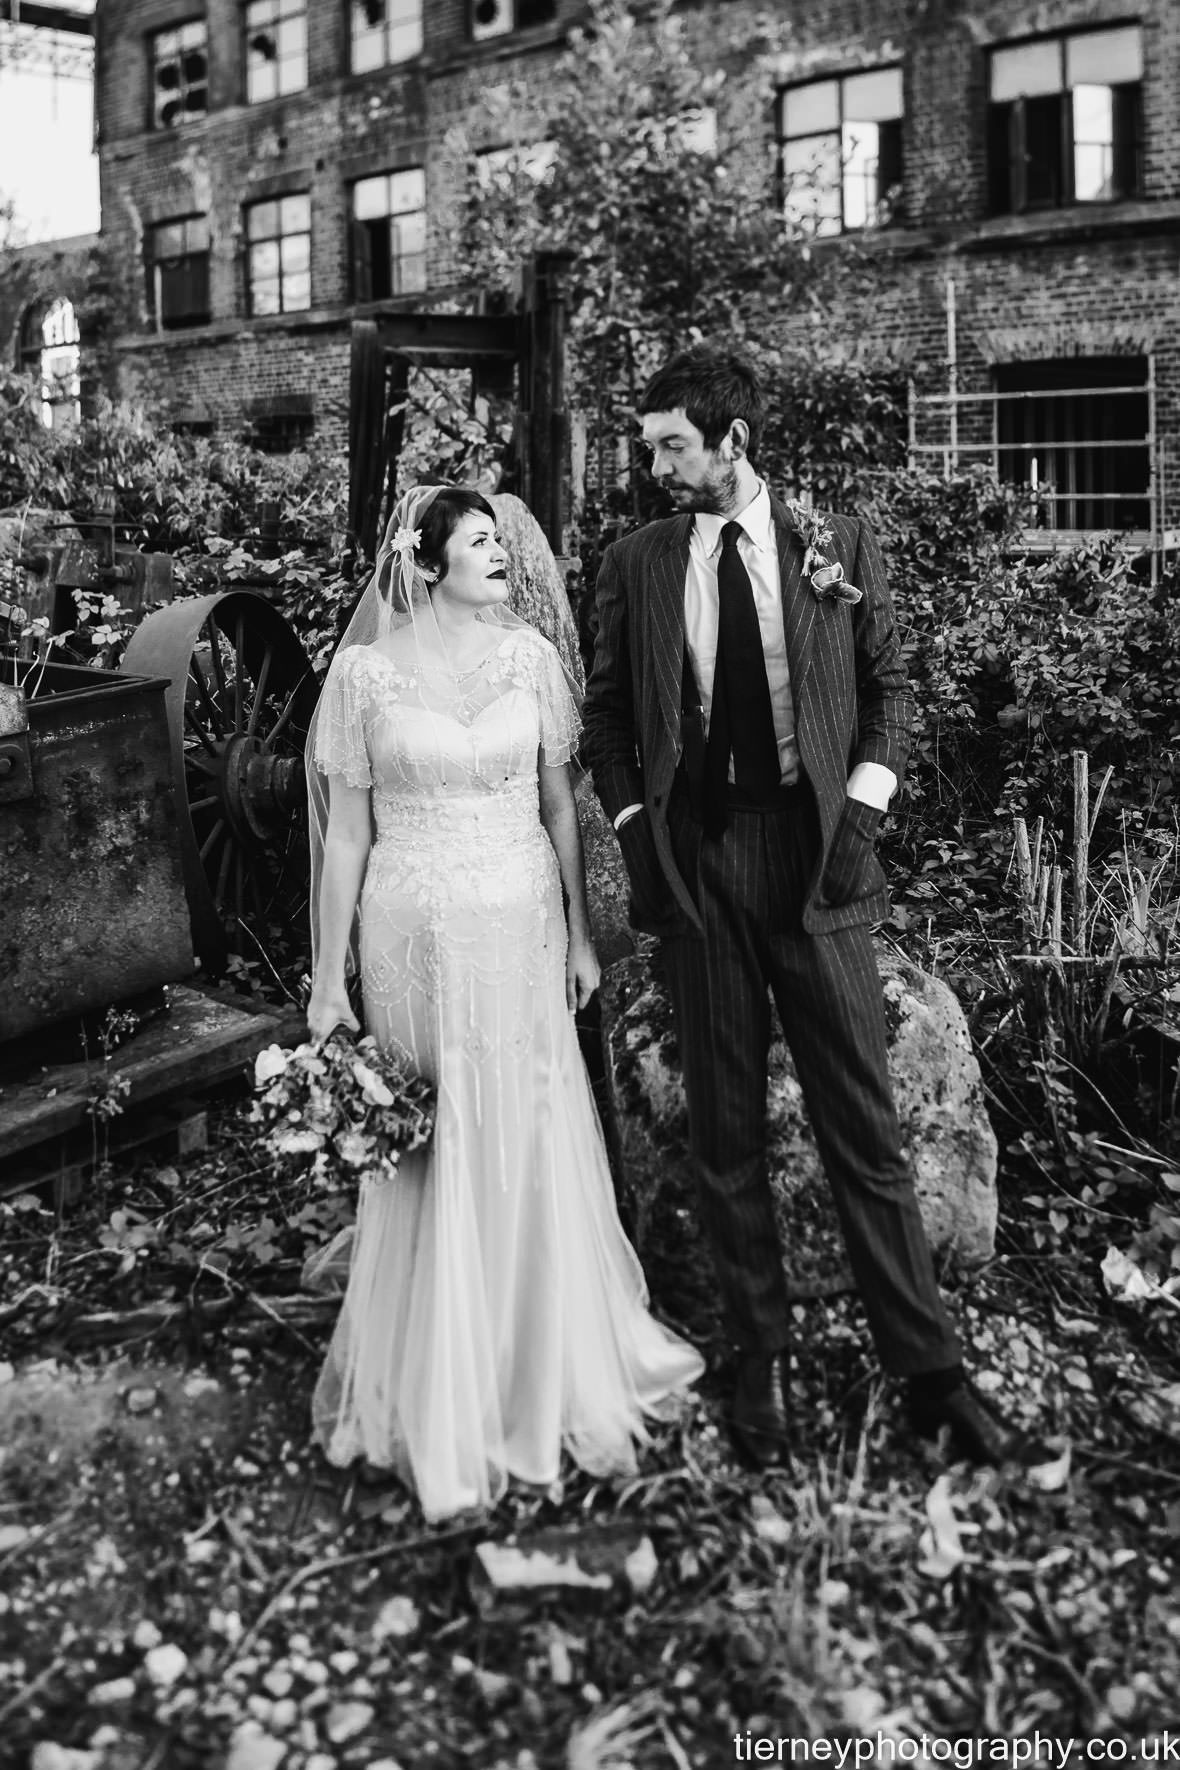 700-wedding-at-kelham-island-museum